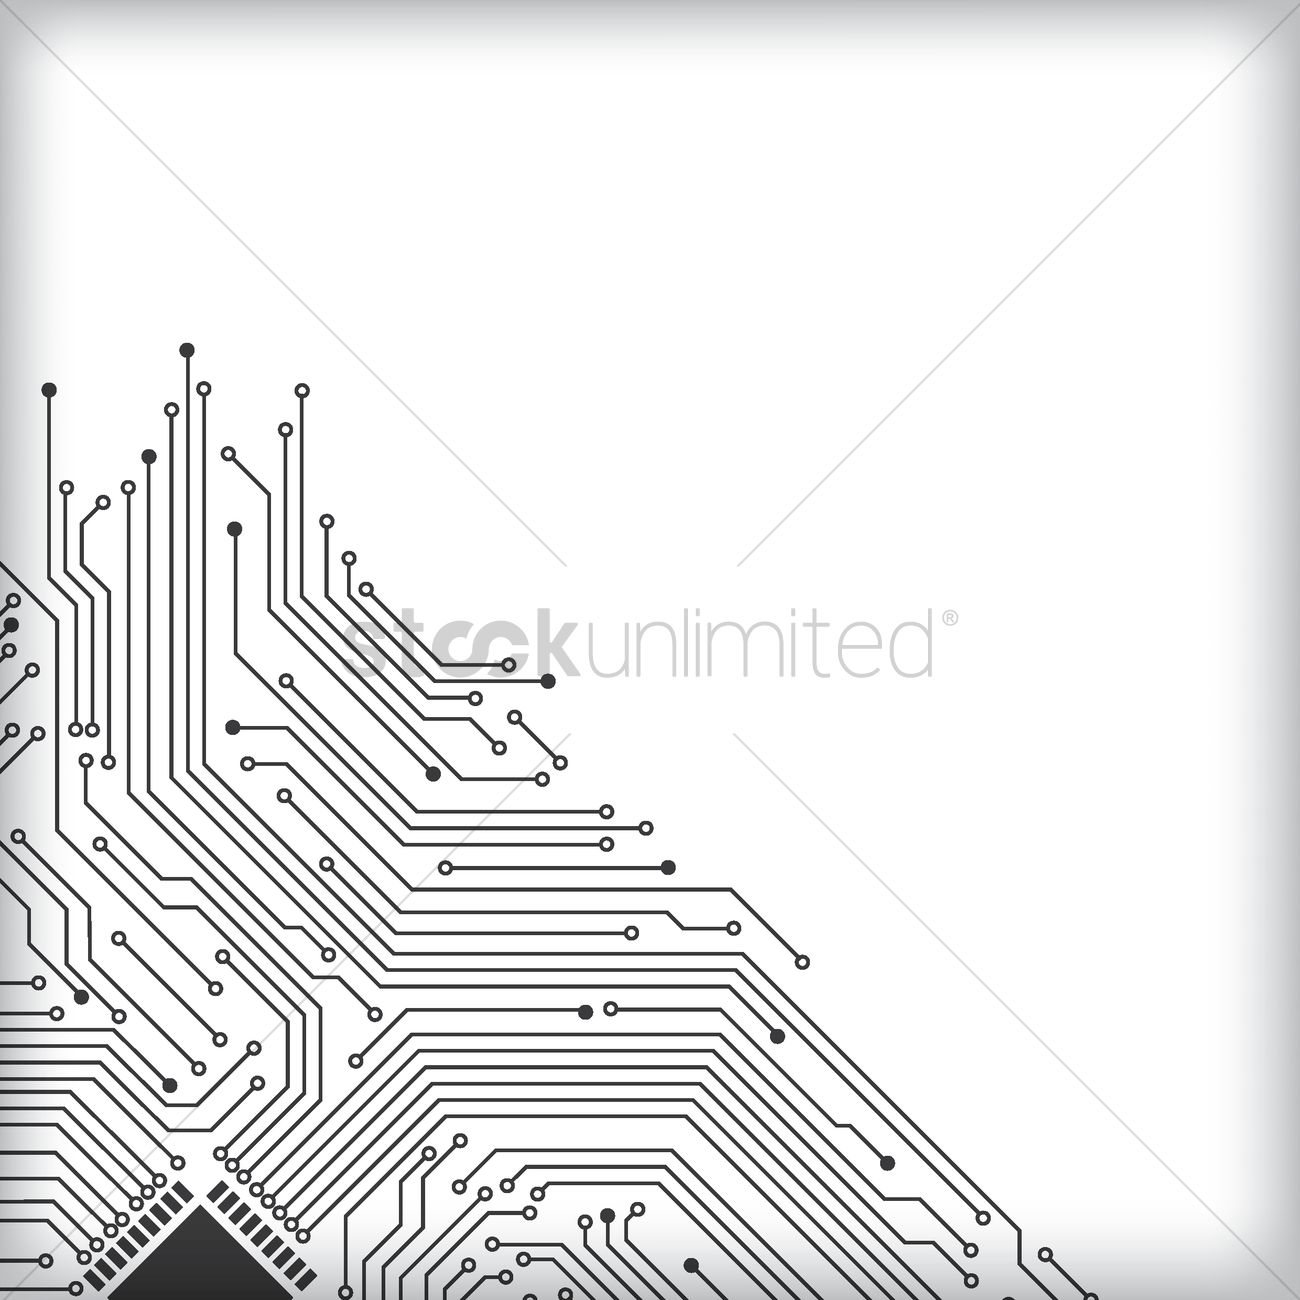 Circuit board design Vector Image - 1948325 | StockUnlimited